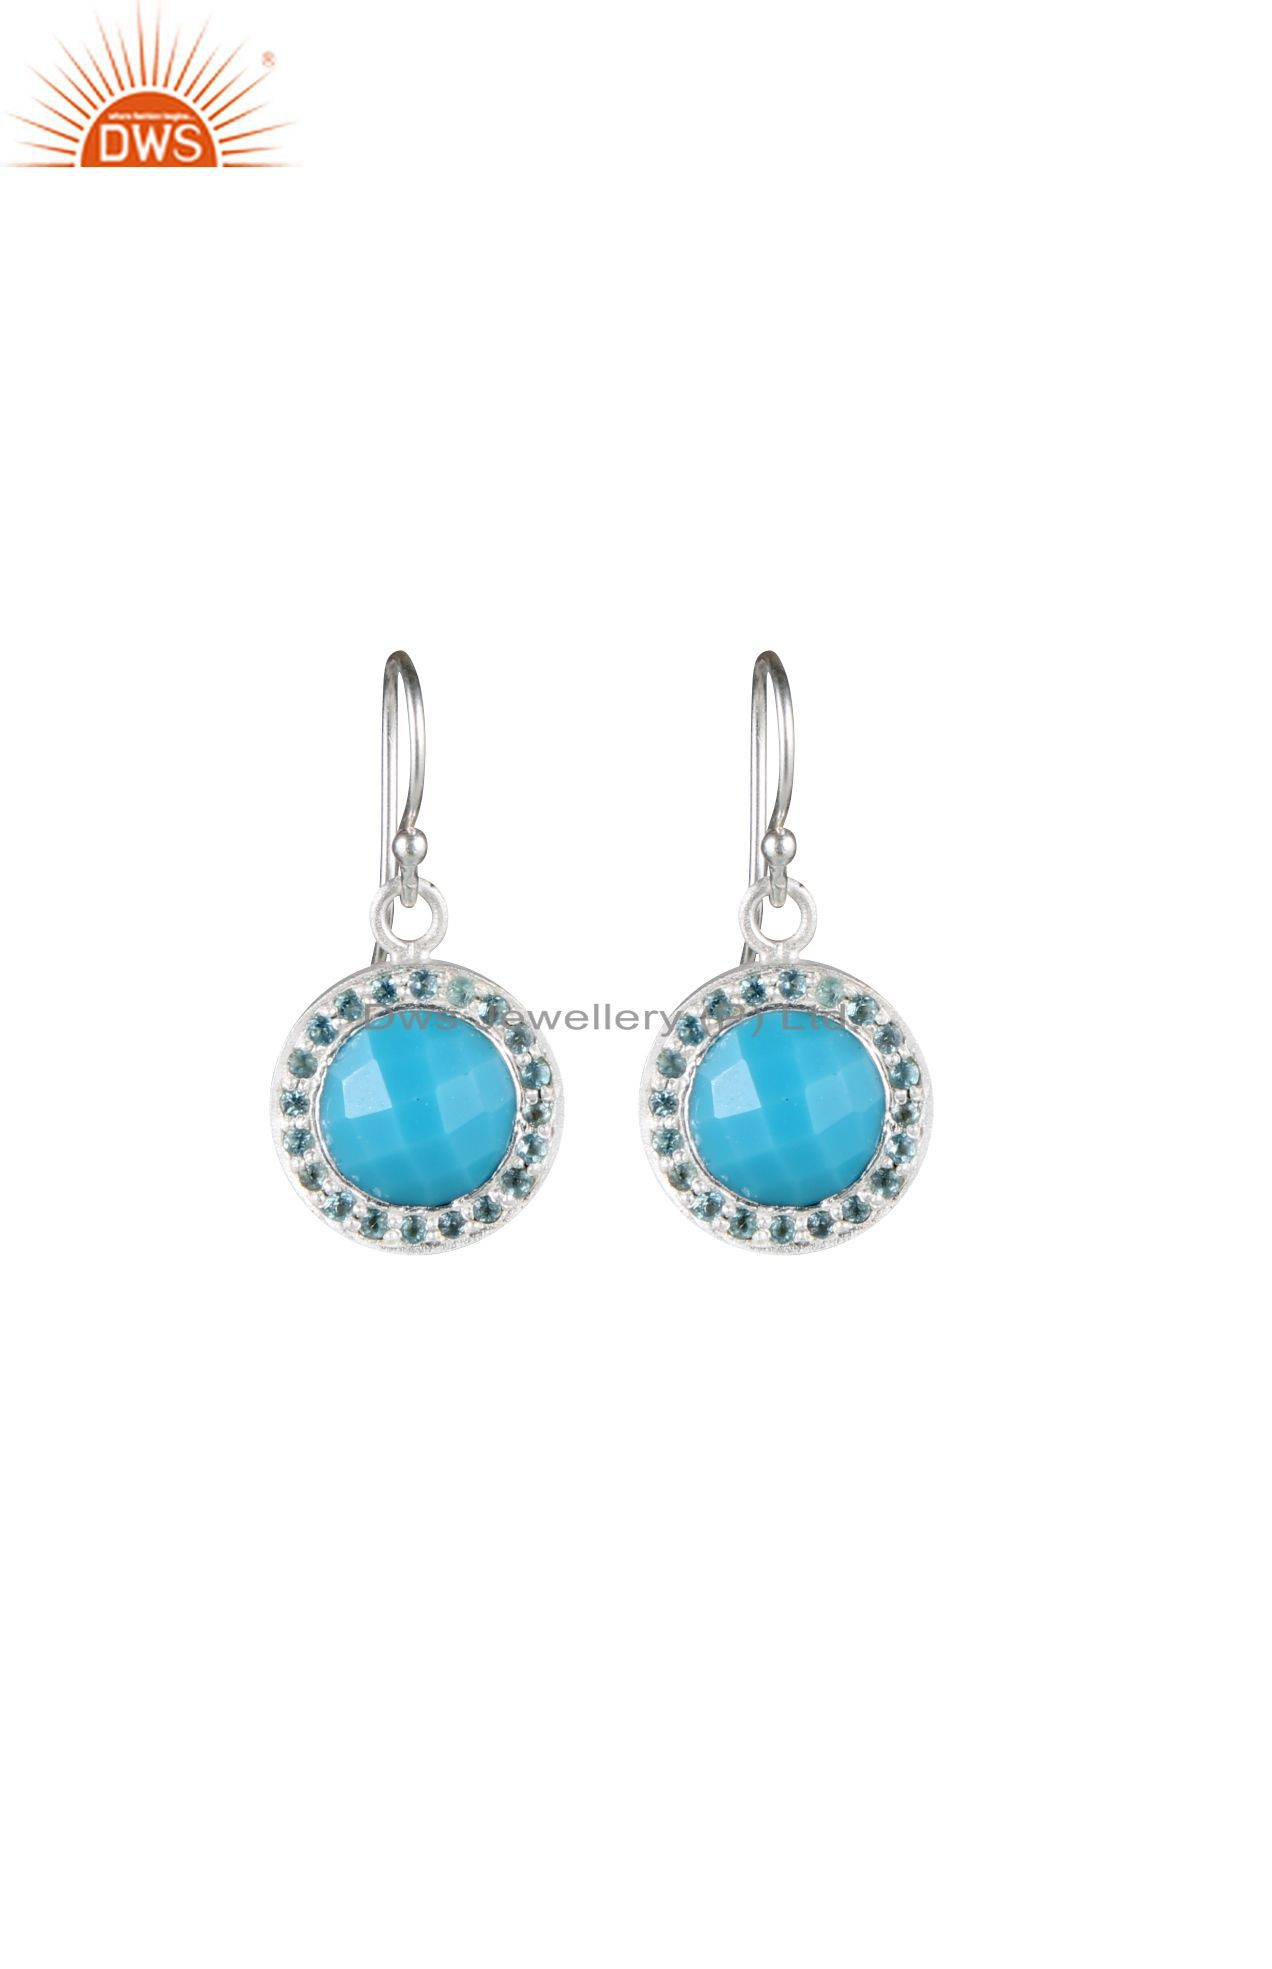 Handmade Sterling Silver Turquoise And Blue Topaz Halo Style Drop Earrings